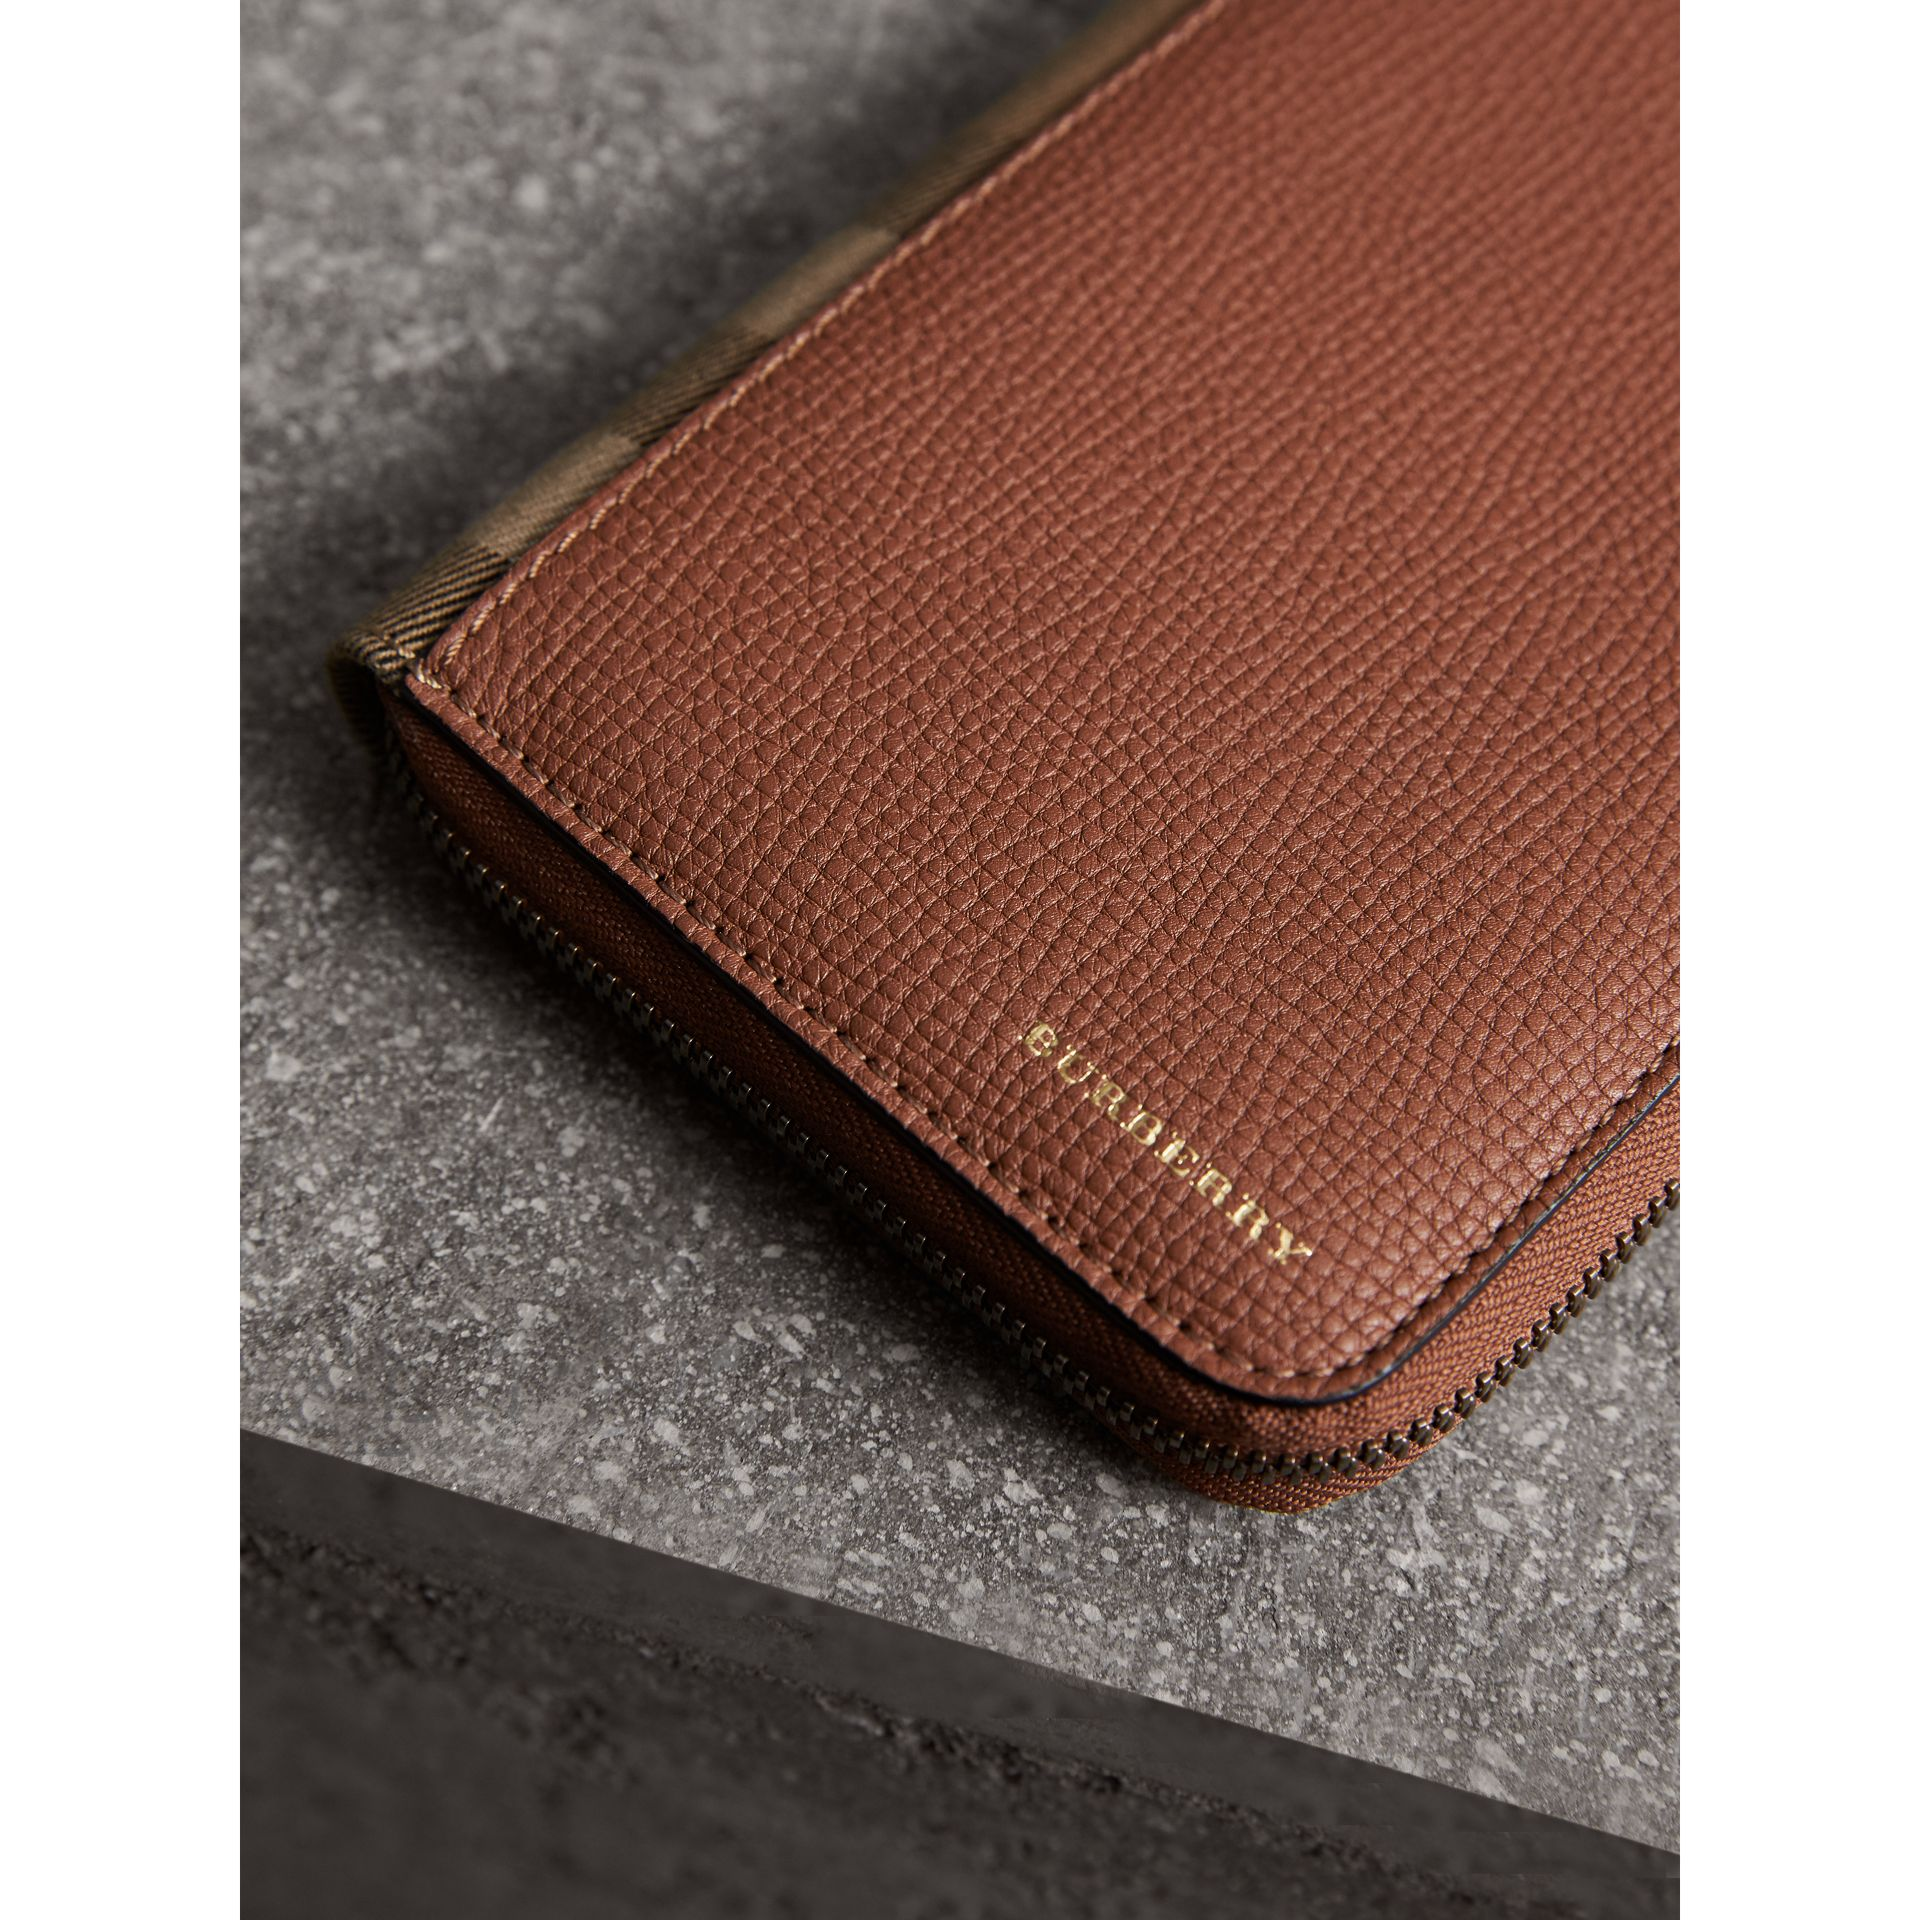 House Check and Grainy Leather Ziparound Wallet in Chestnut Brown - Men | Burberry United Kingdom - gallery image 2